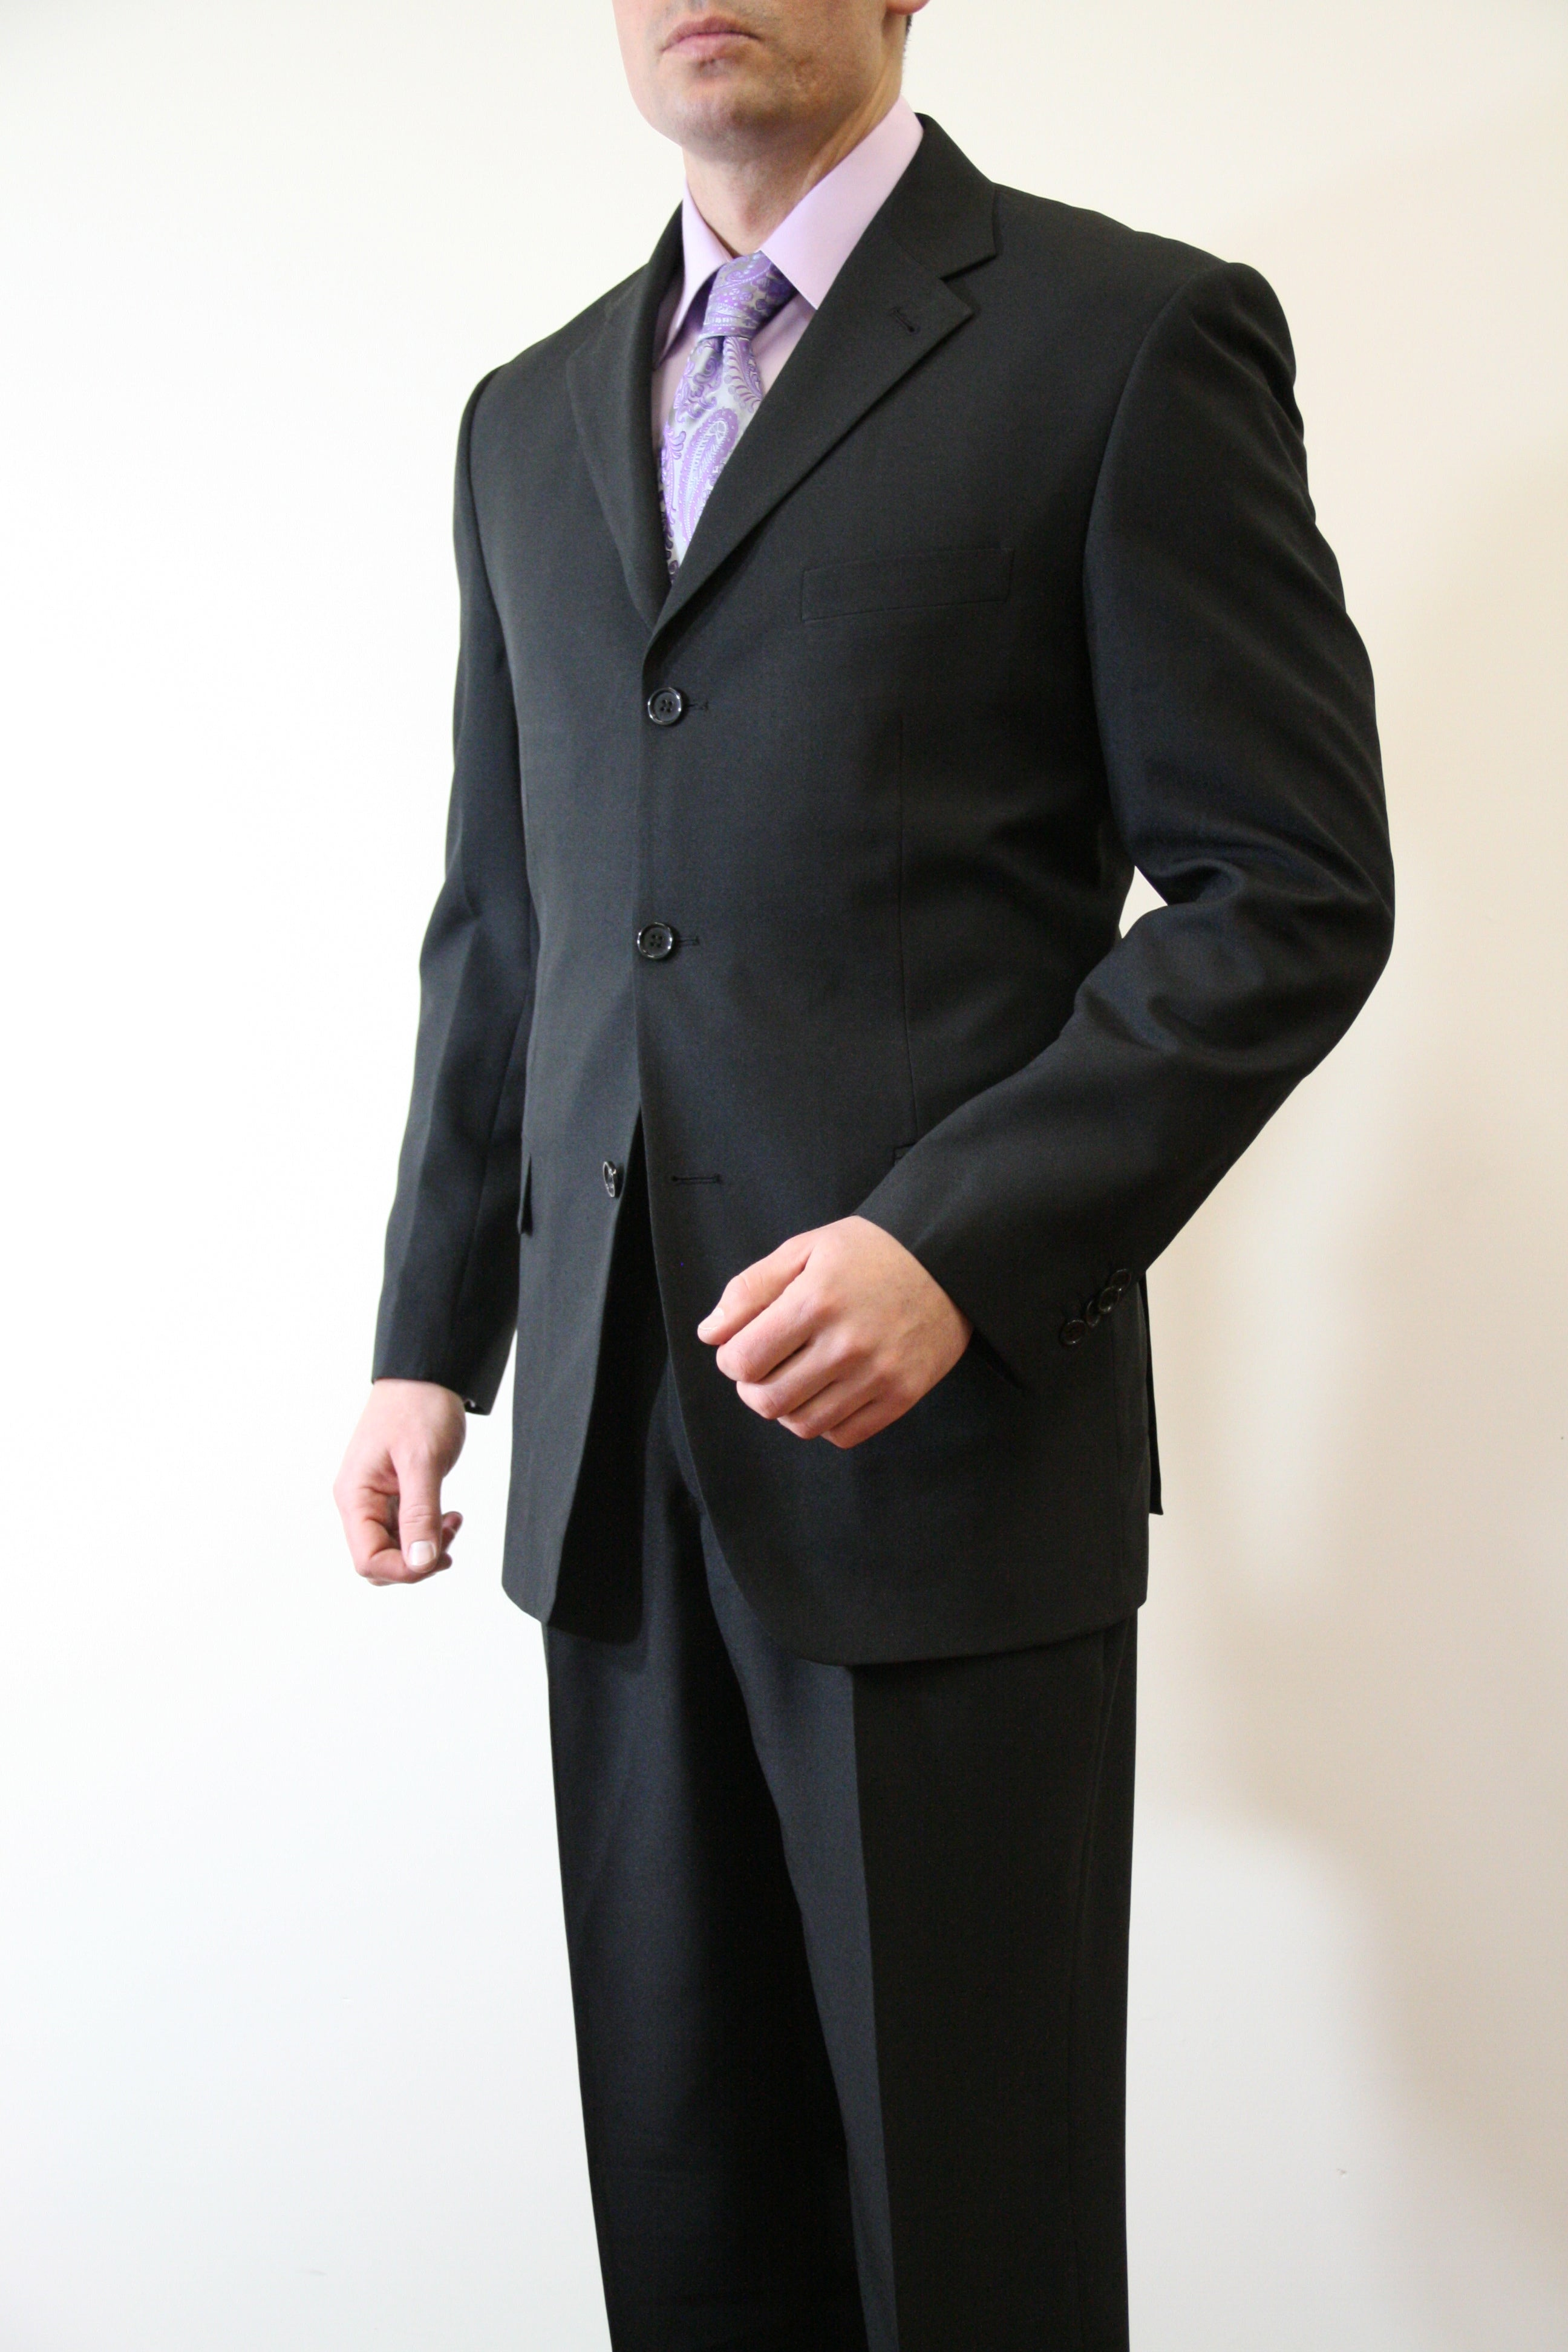 Black Suit For Men Formal Suits For All Ocassions M069-01